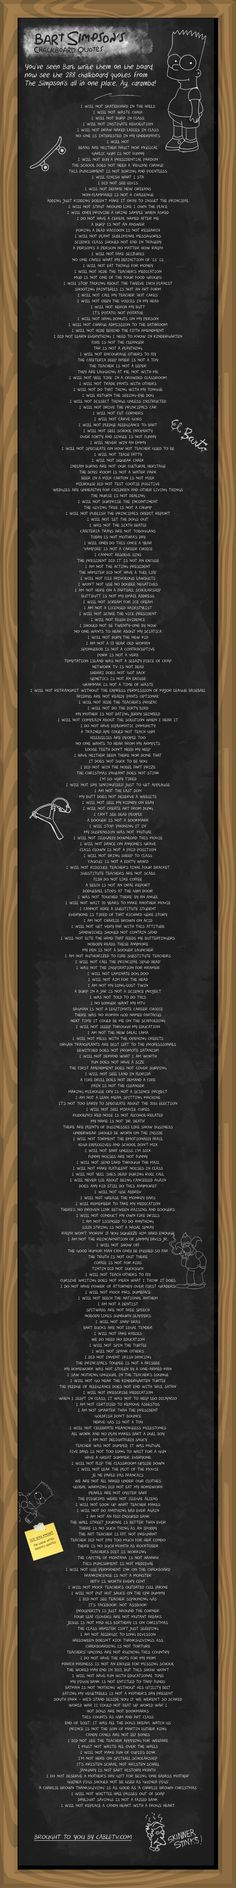 """Bart Simpson's Chalkboard Quotes. My favorites are """"Poking a dead raccoon is not research"""" and """"Making Milhouse cry is not a science project""""."""